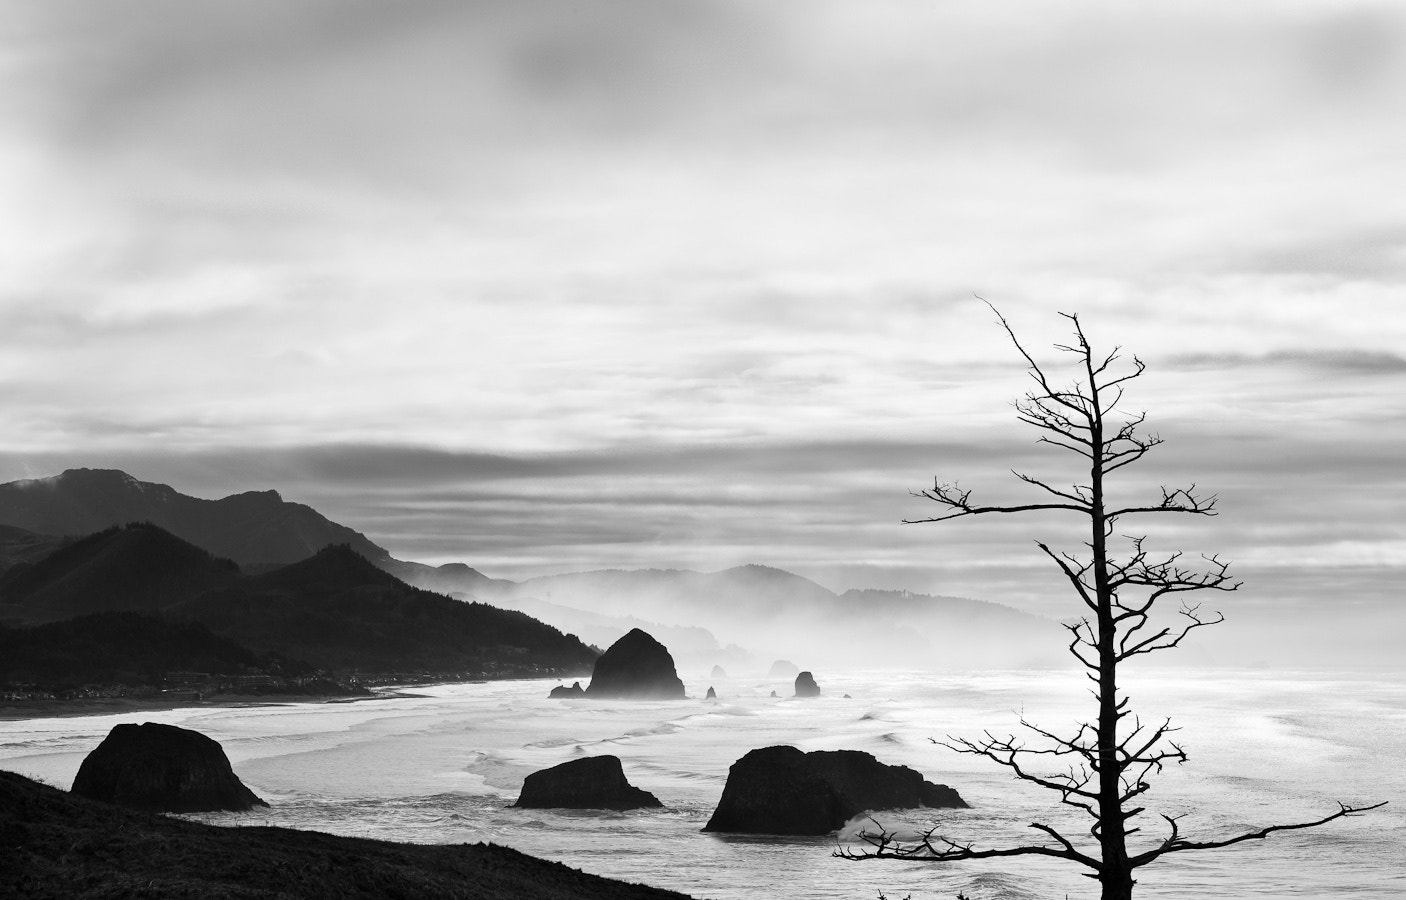 Photograph A View of Cannon Beach by Brian Pemberton on 500px